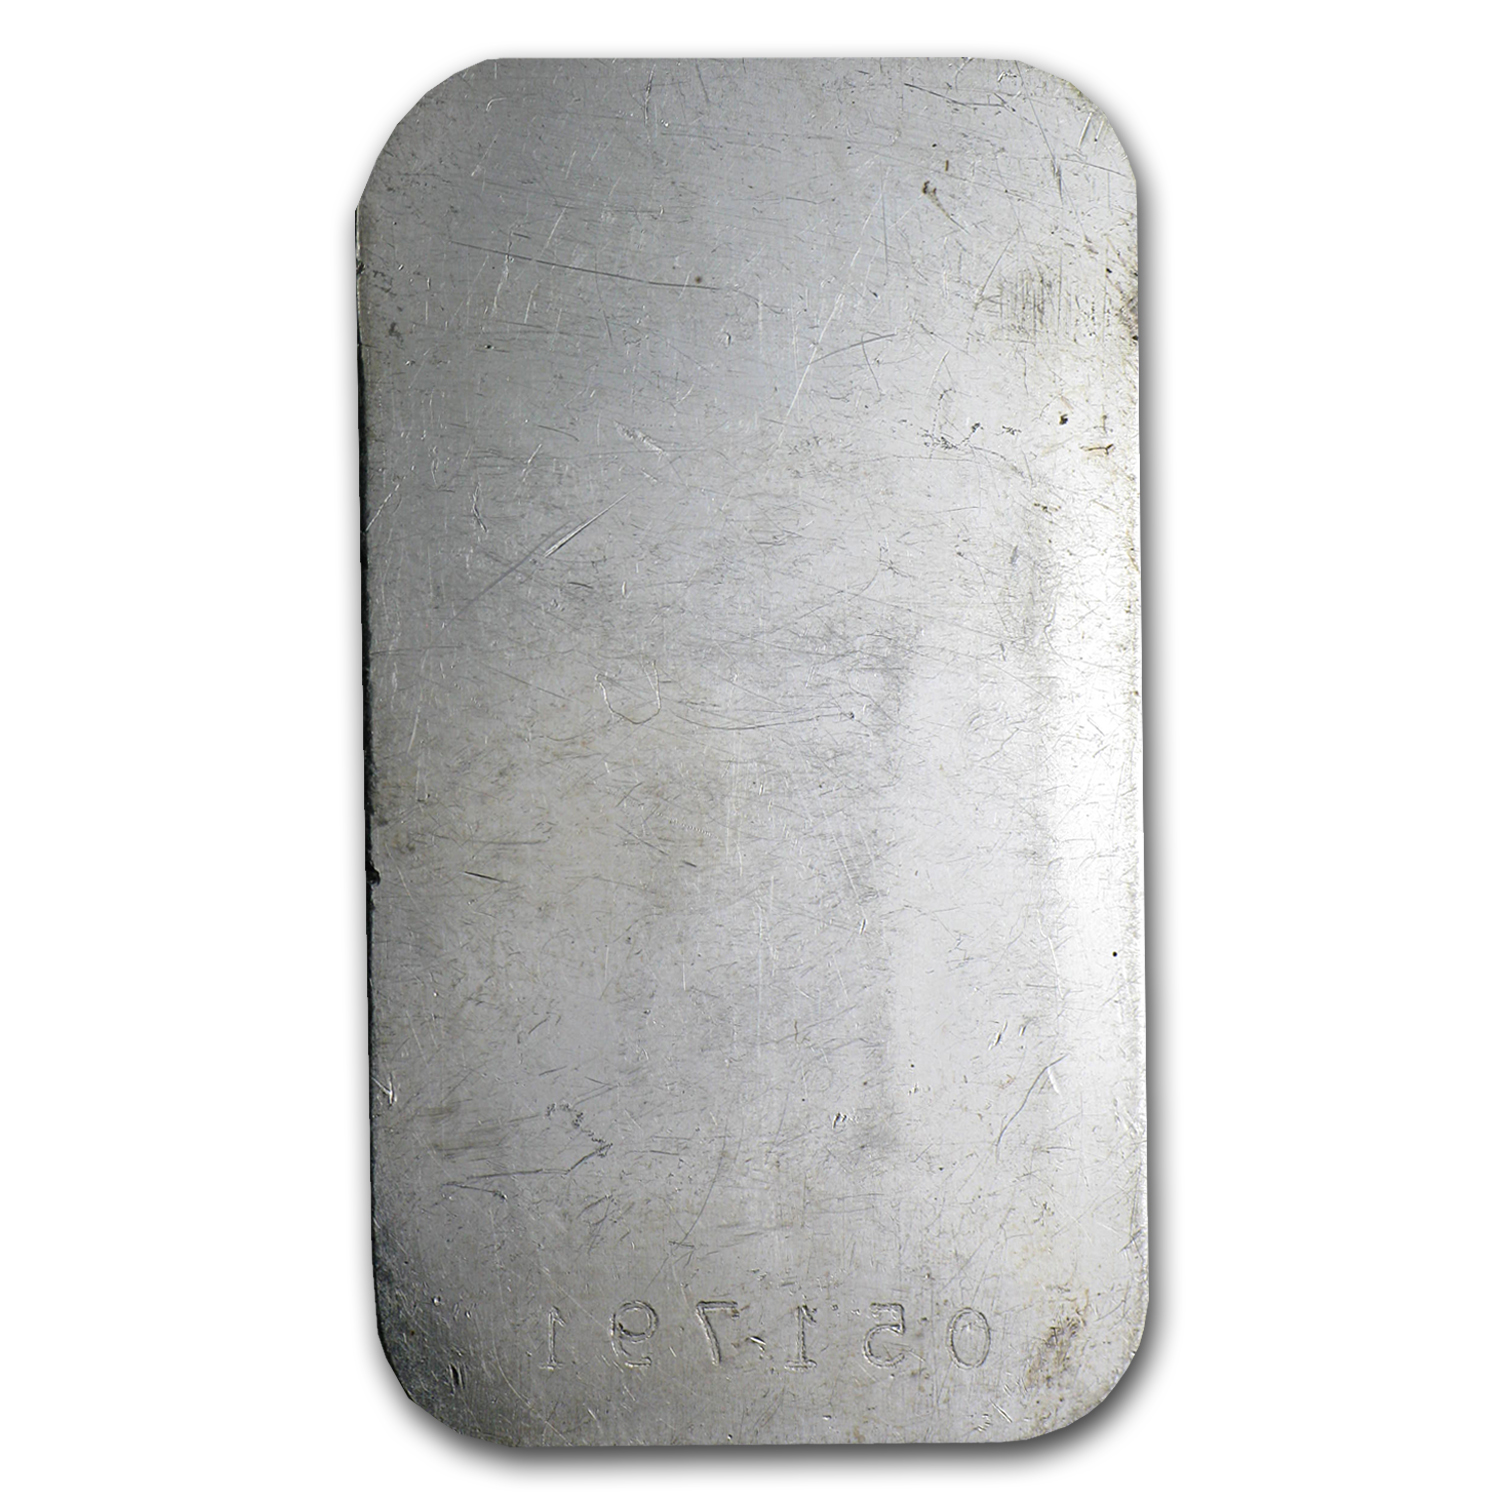 1 oz Silver Bars - Engelhard (Tall/Maple/Smooth/w/out Border)